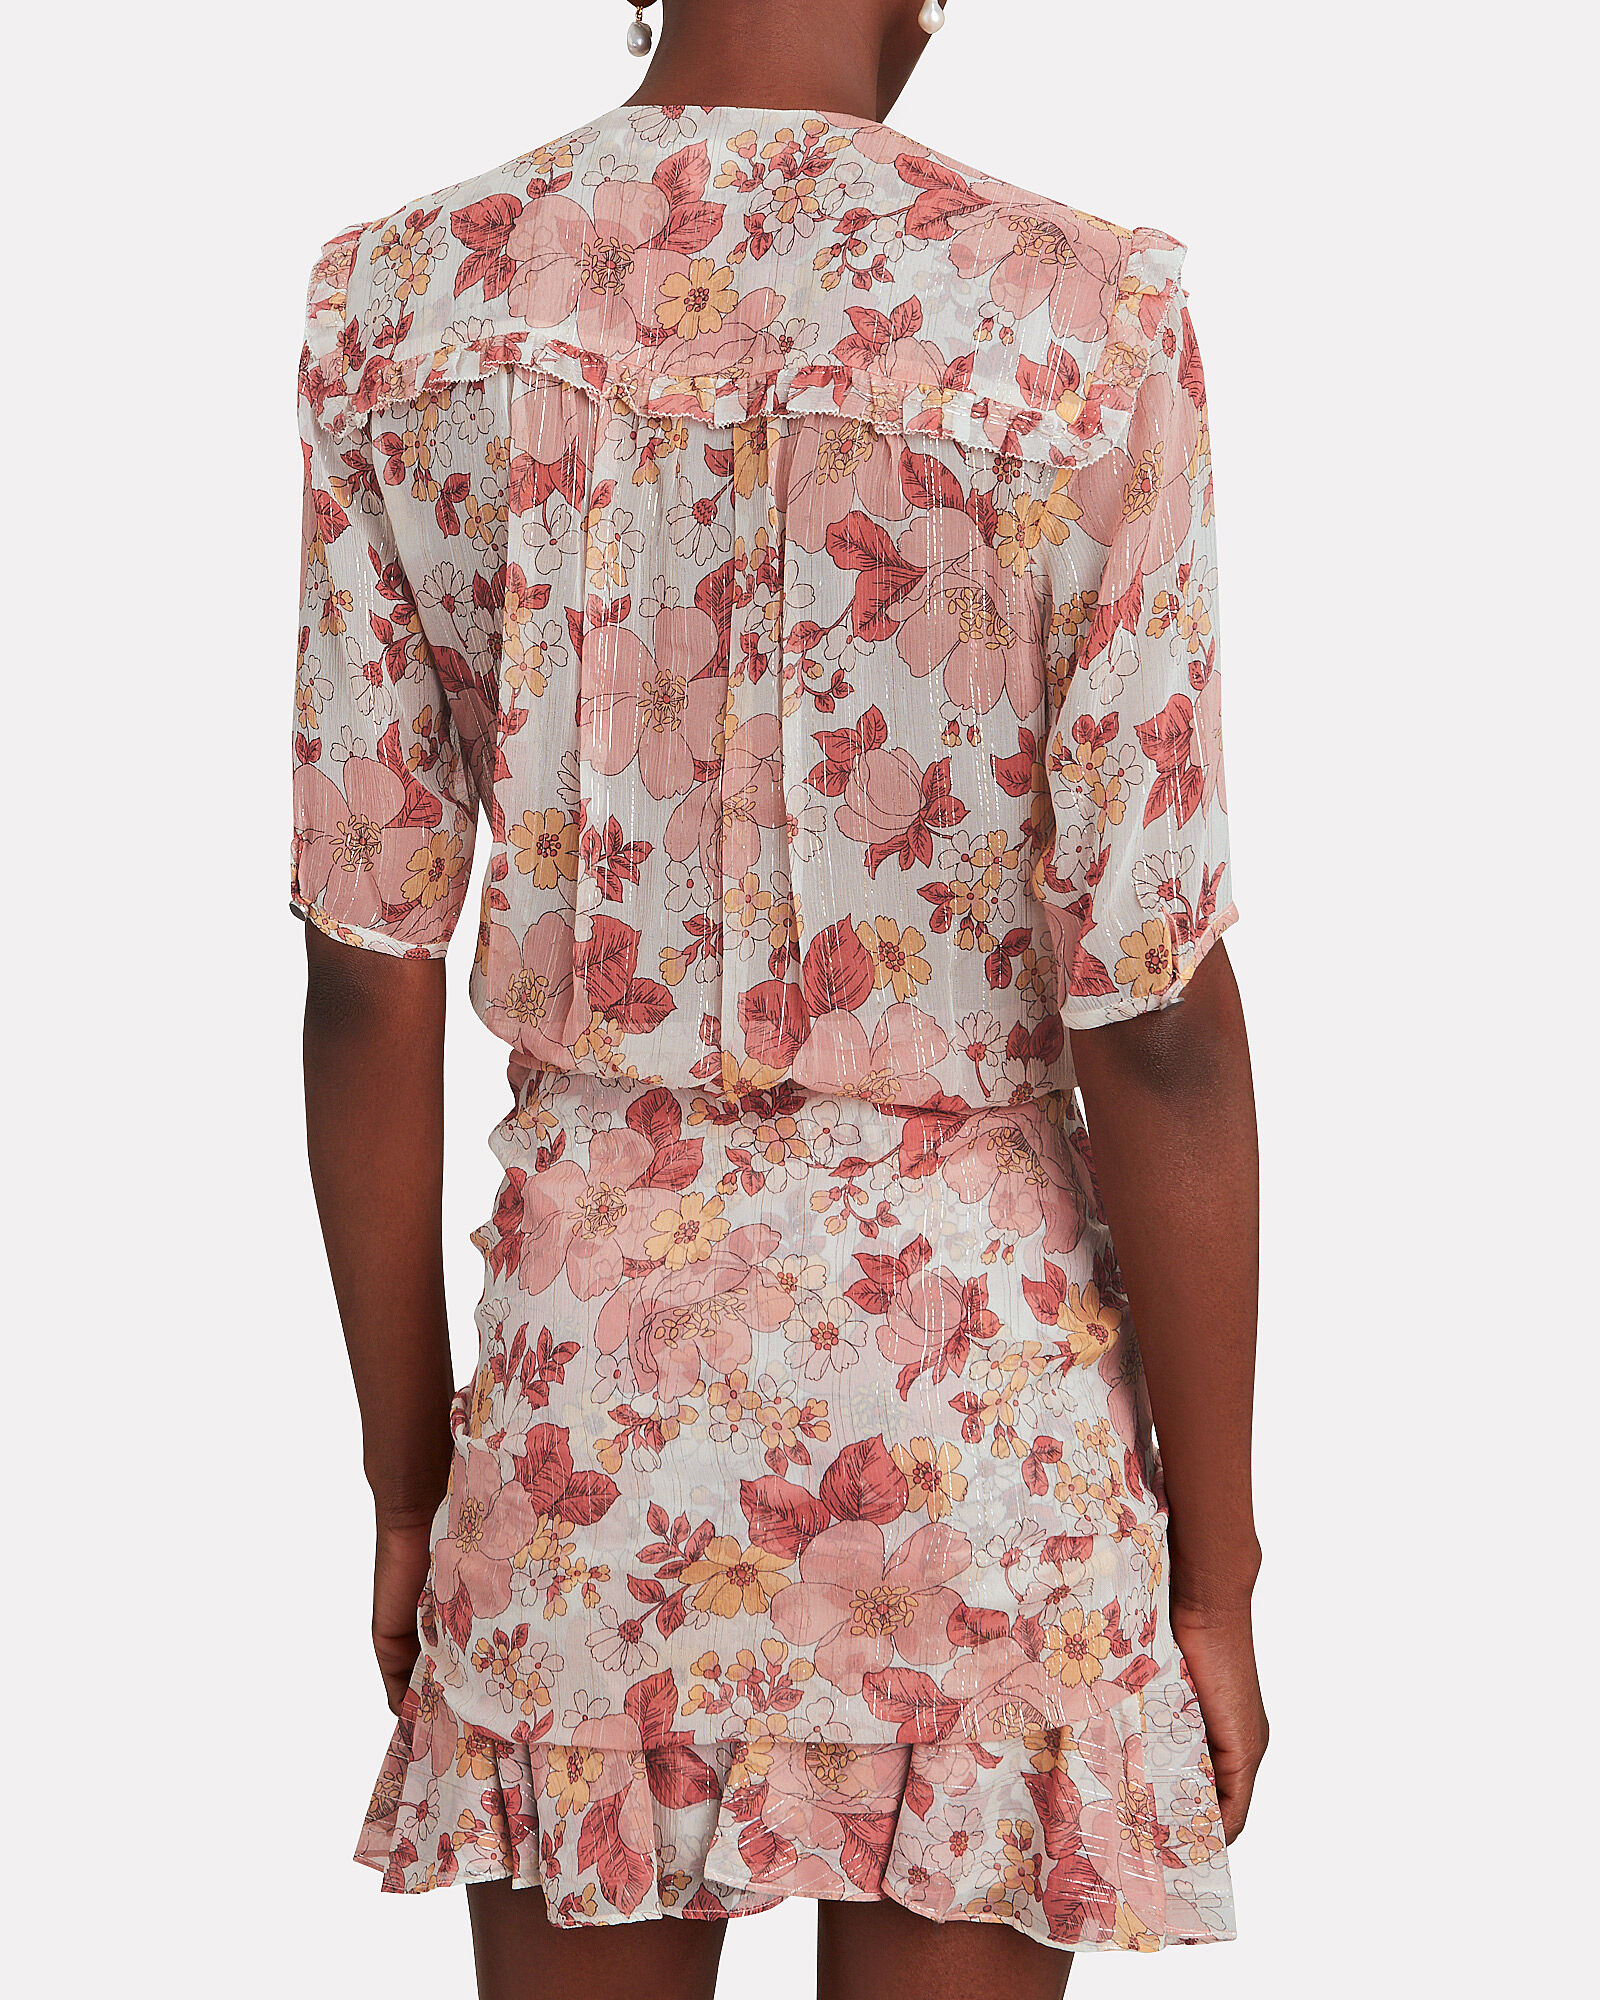 Dakota Floral Mini Dress, BEIGE/PINK, hi-res